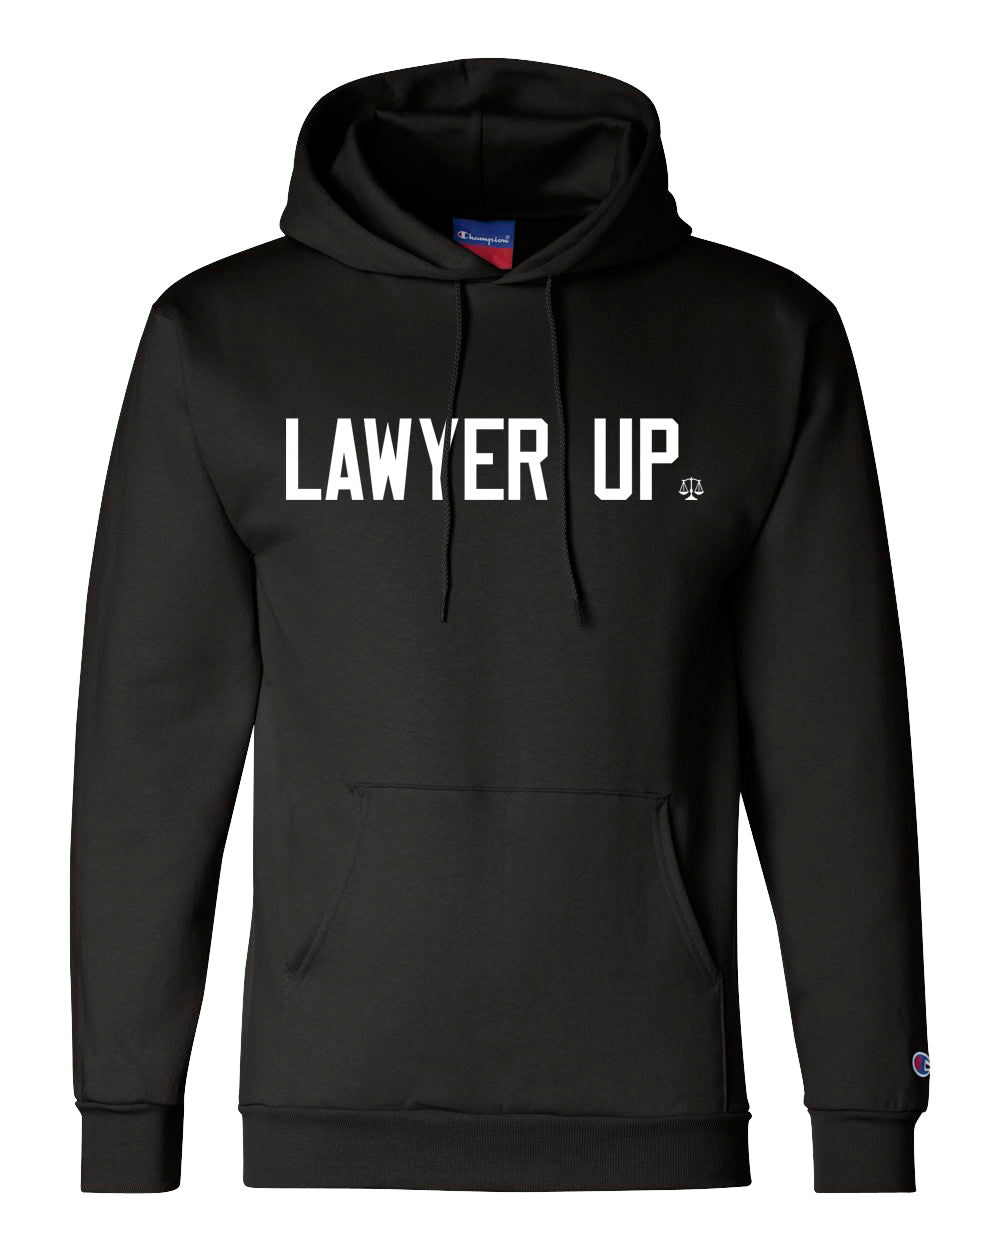 Lawyer Up Shirt | PF-Lawllc.com